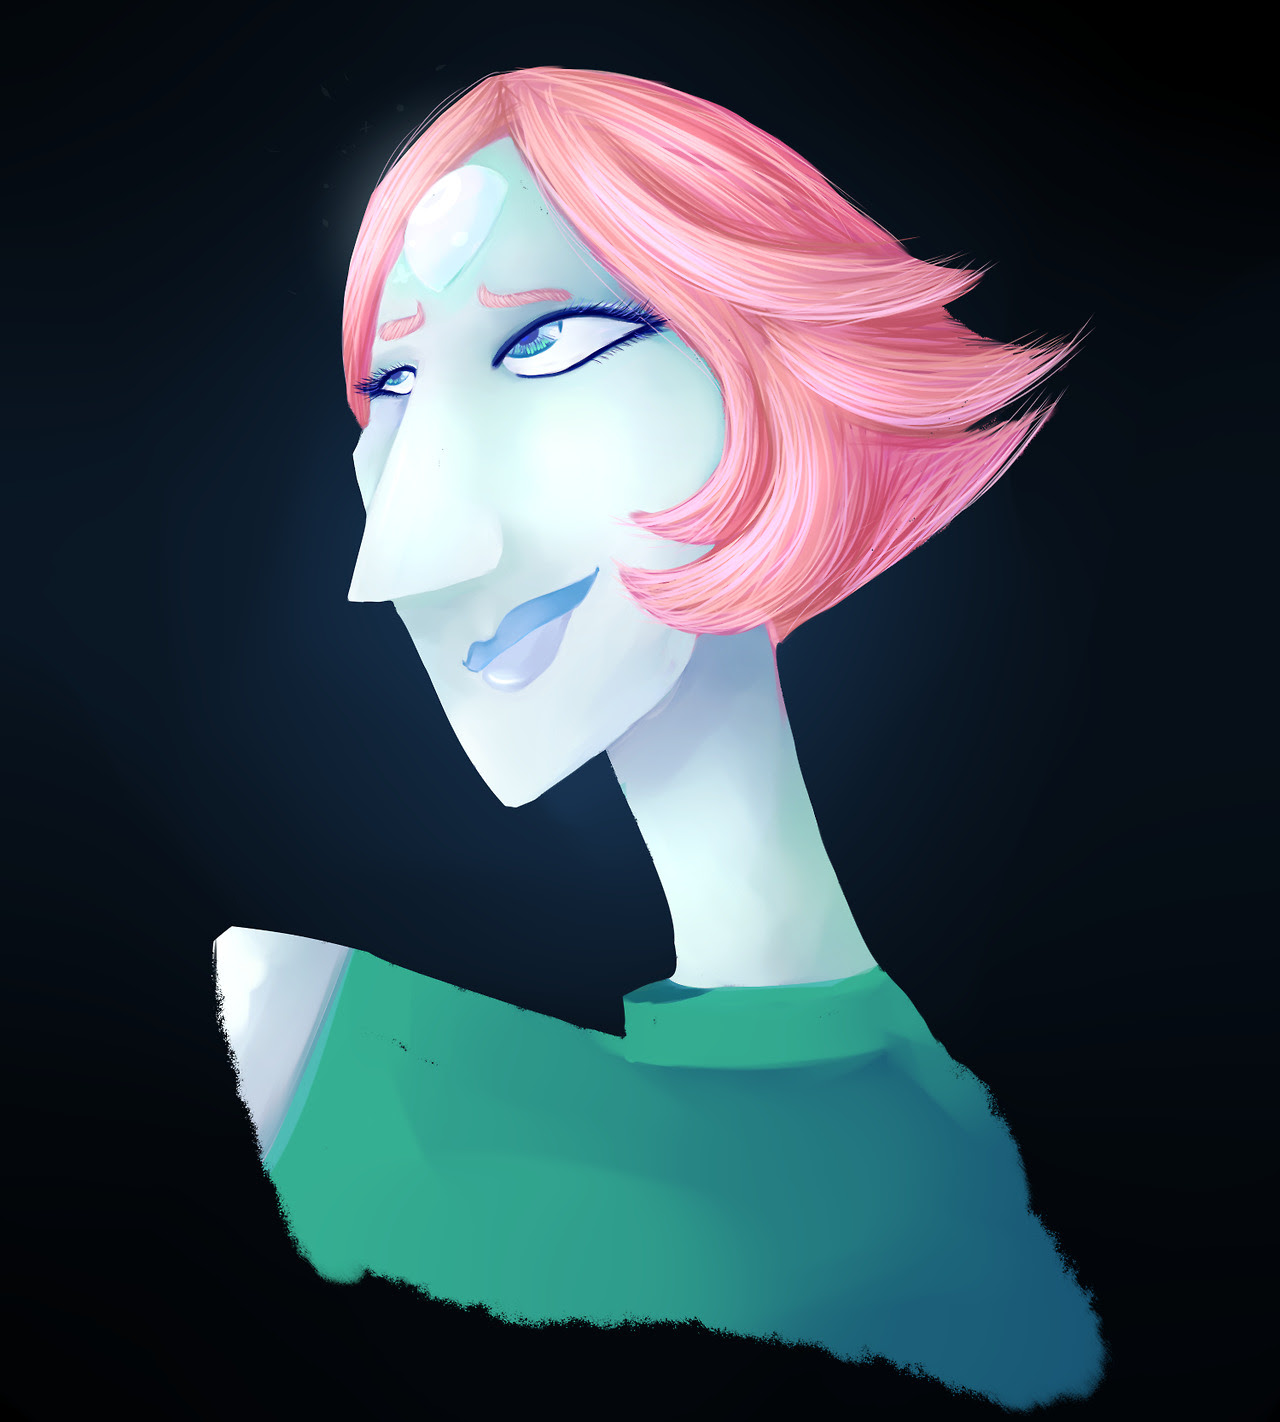 I haven't painted in such a long time, so i decided to paint pearl to get back into a painting mood my painting skills are a bit rusty, but I'm pretty happy with how this came out nonetheless!